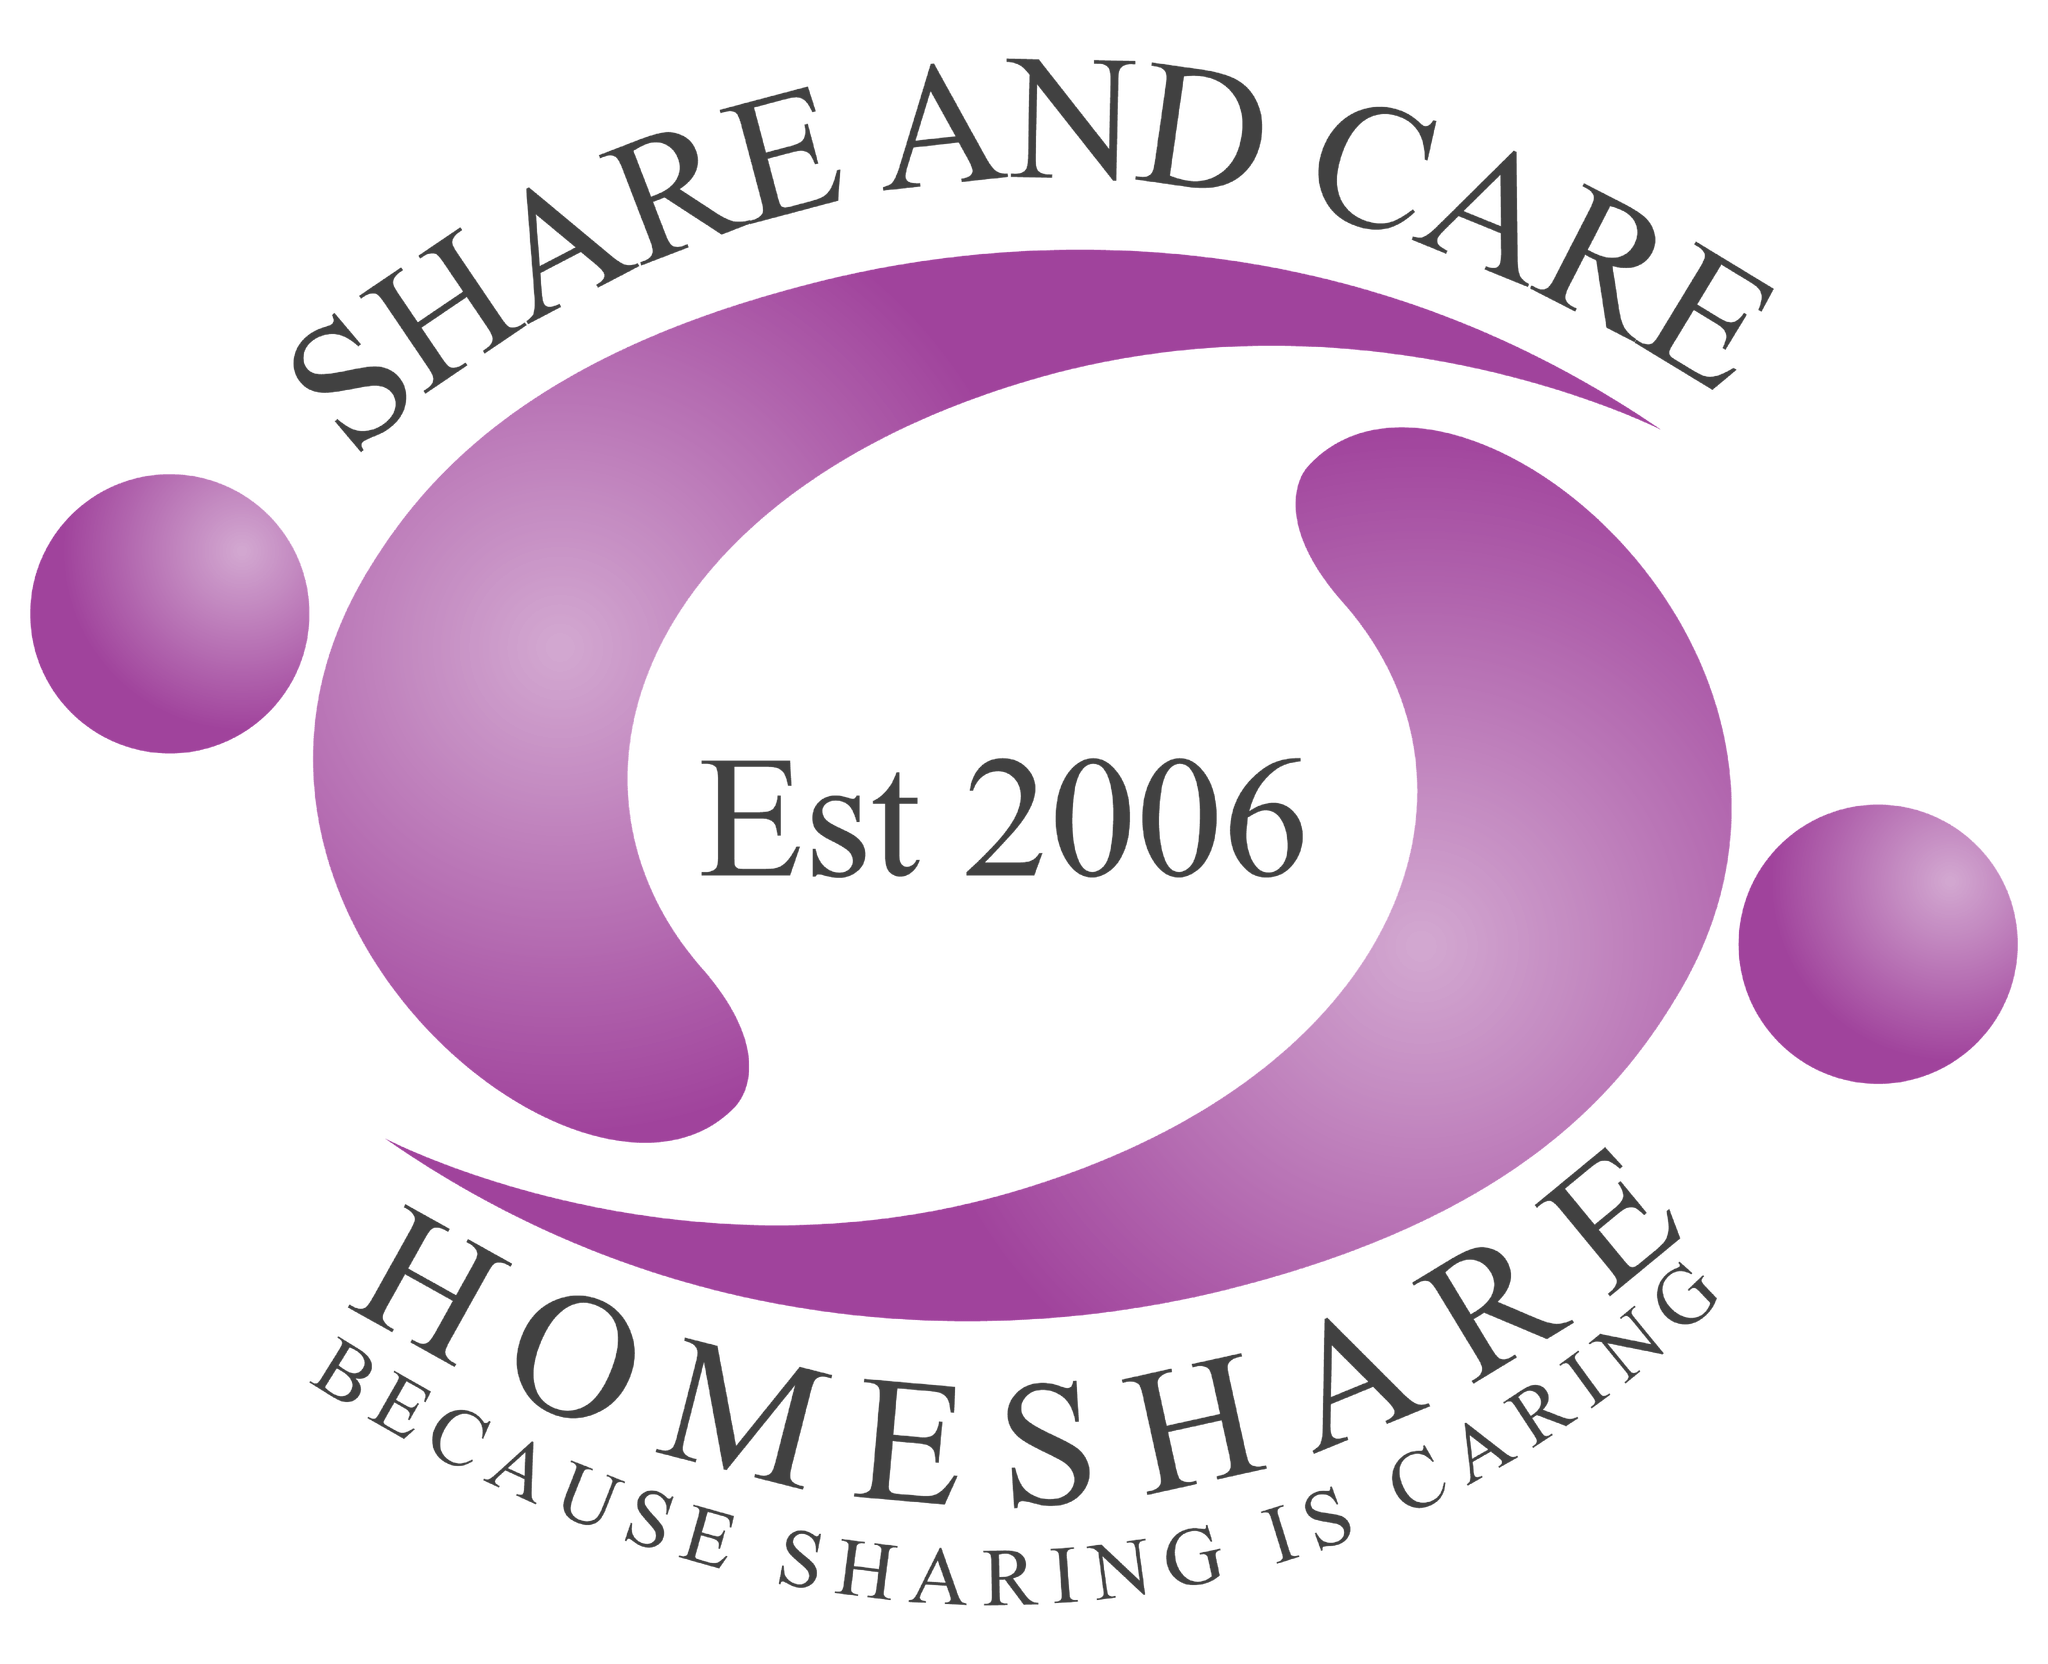 Share and Care Homeshare